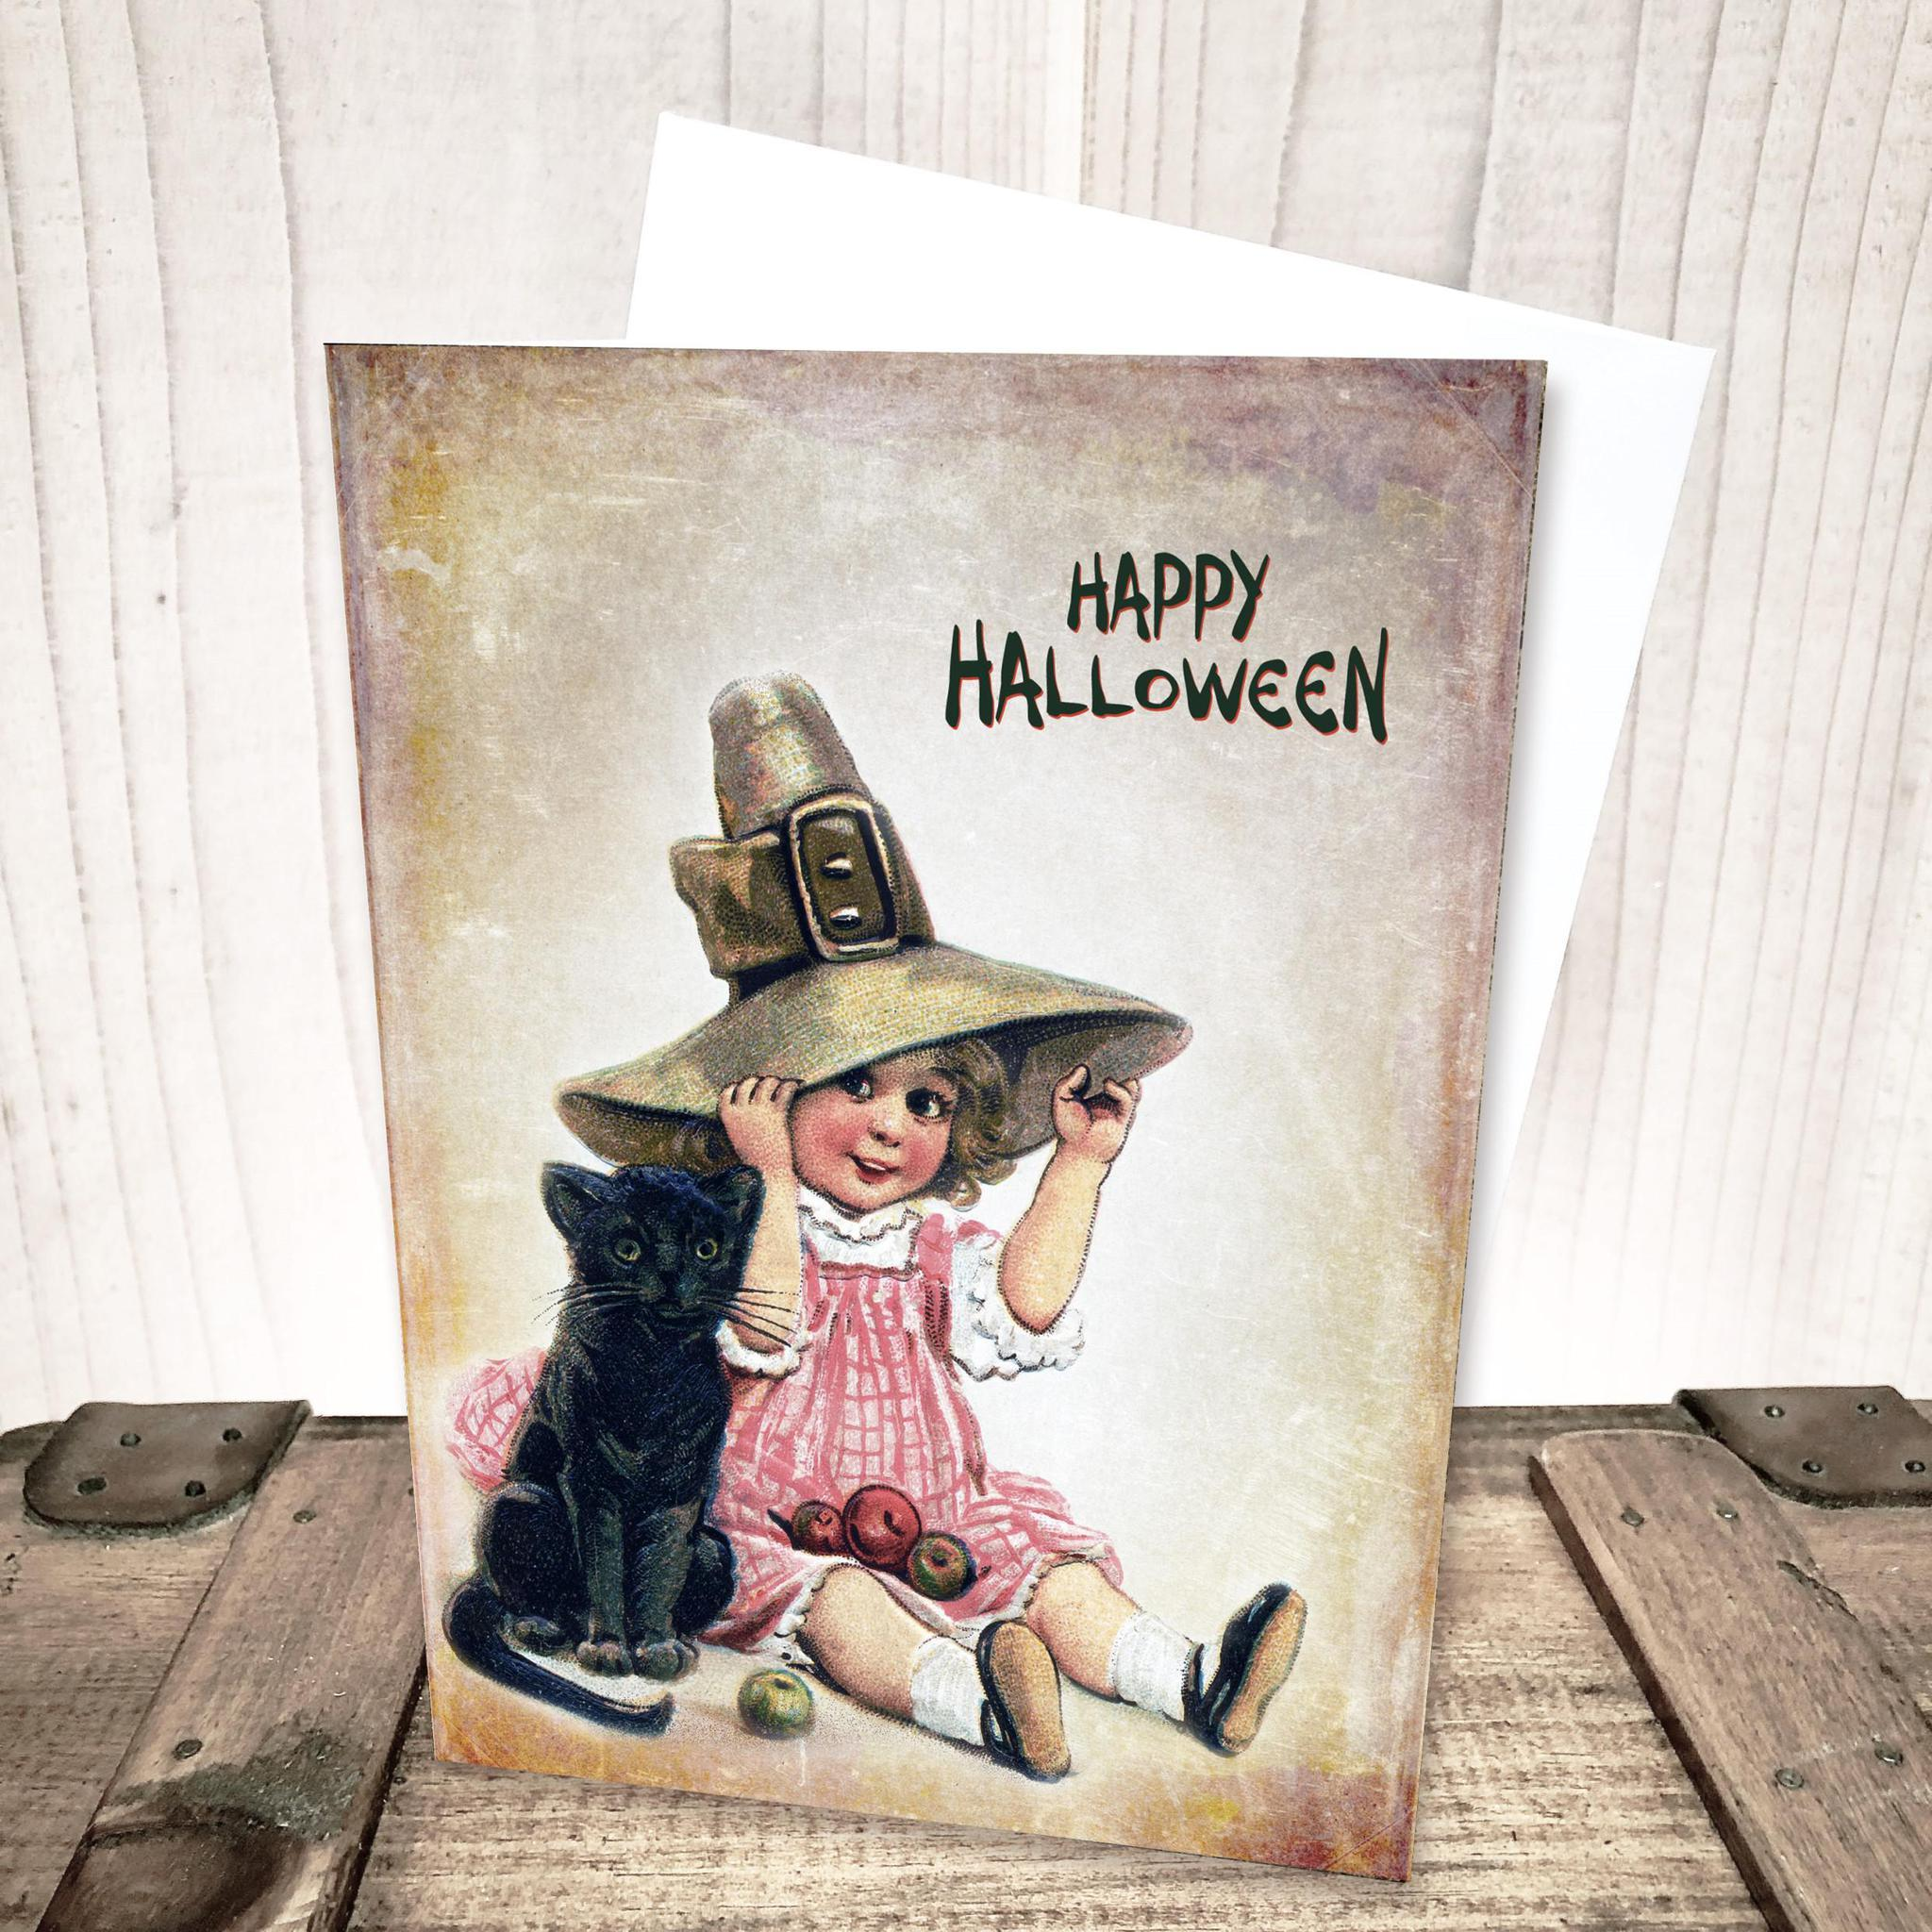 Sweet Girl with Black Cat Halloween Card by Yesterday's Best